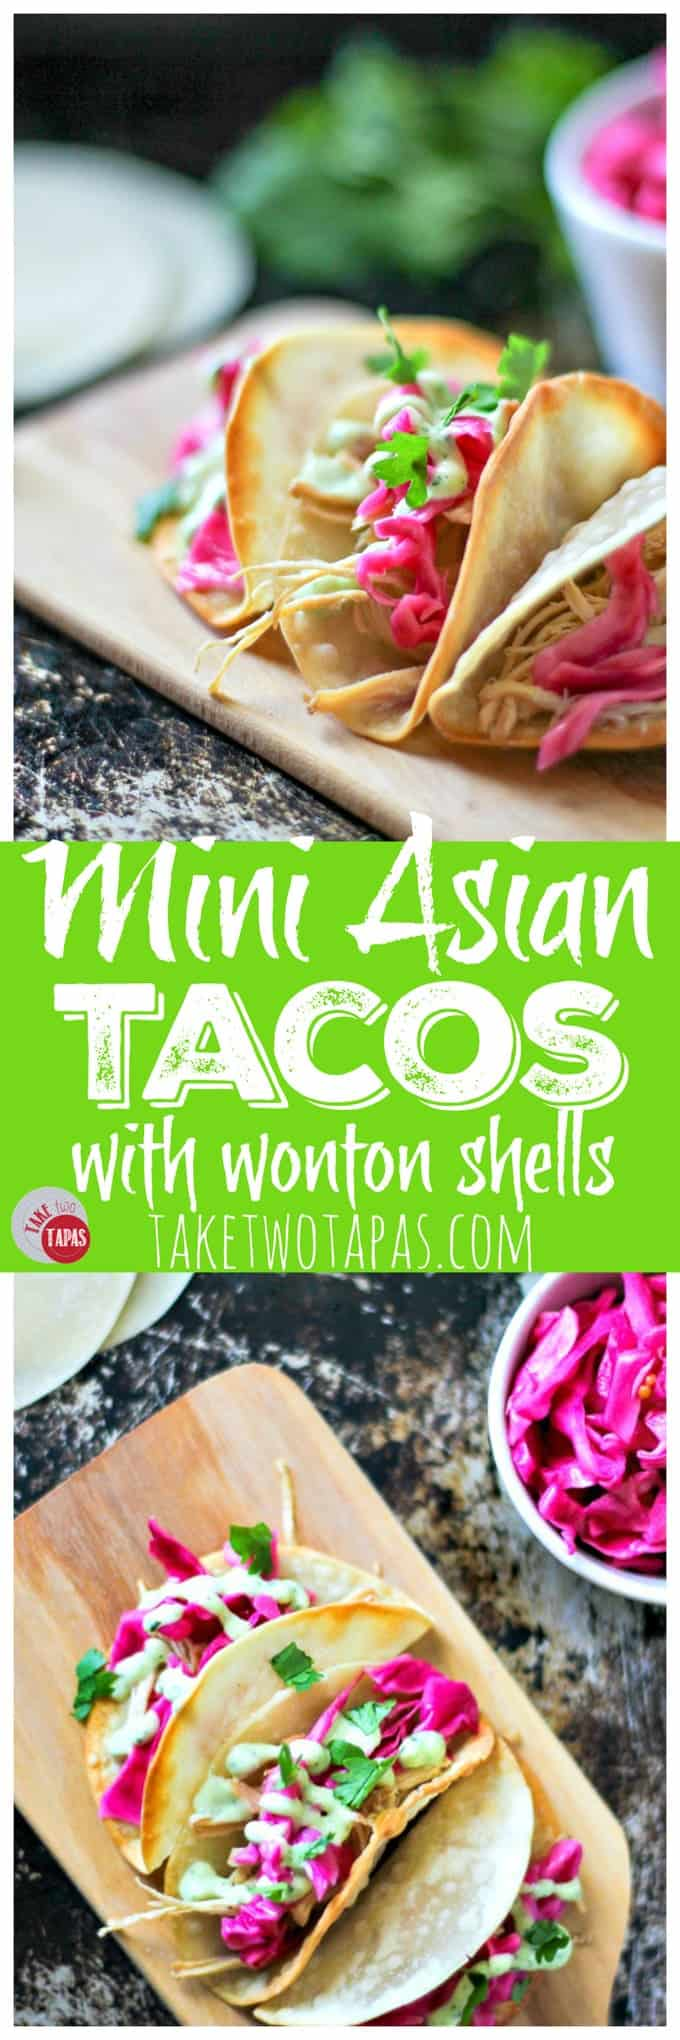 Mini Asian Tacos with Wonton Shells | Take Two Tapas